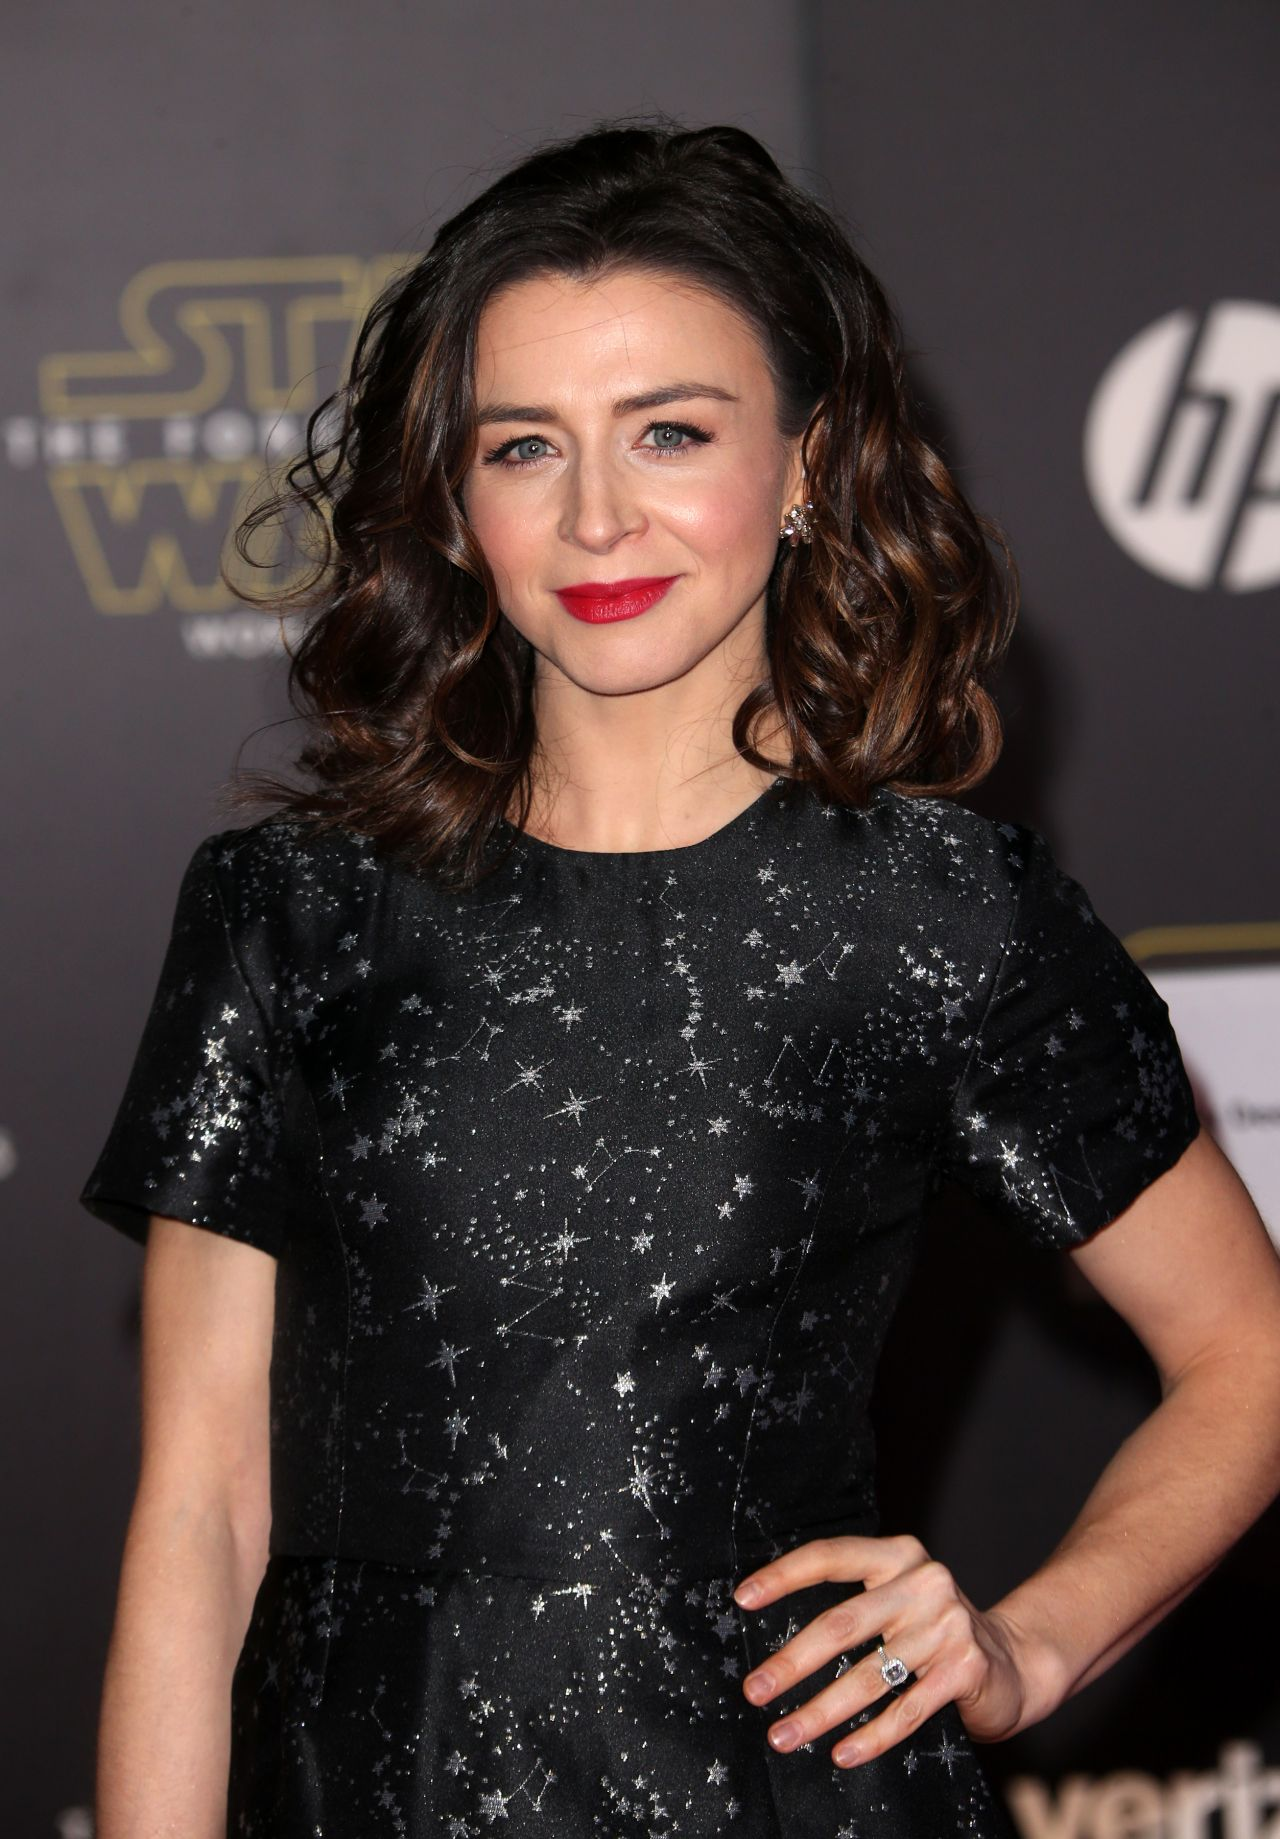 Caterina Scorsone Star Wars The Force Awakens Premiere